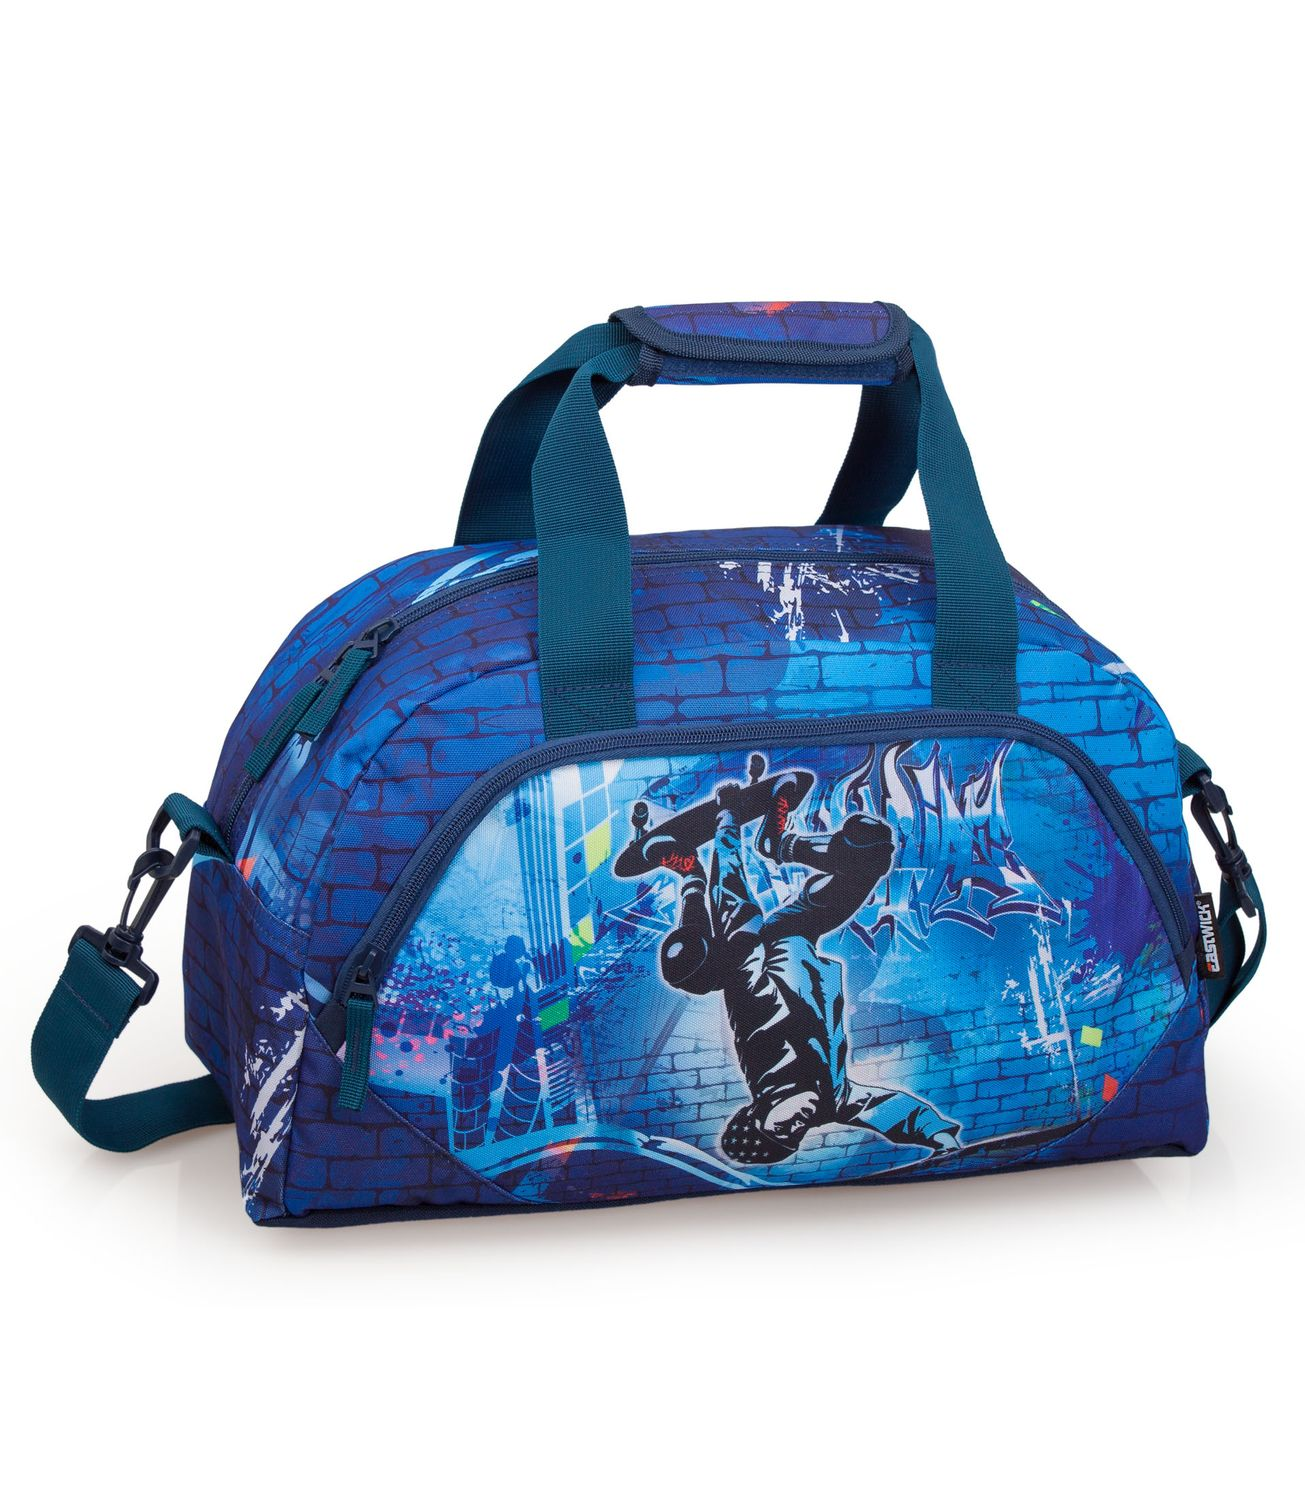 Eastwick BLUE SKATER Sports Travel Bag – image 1